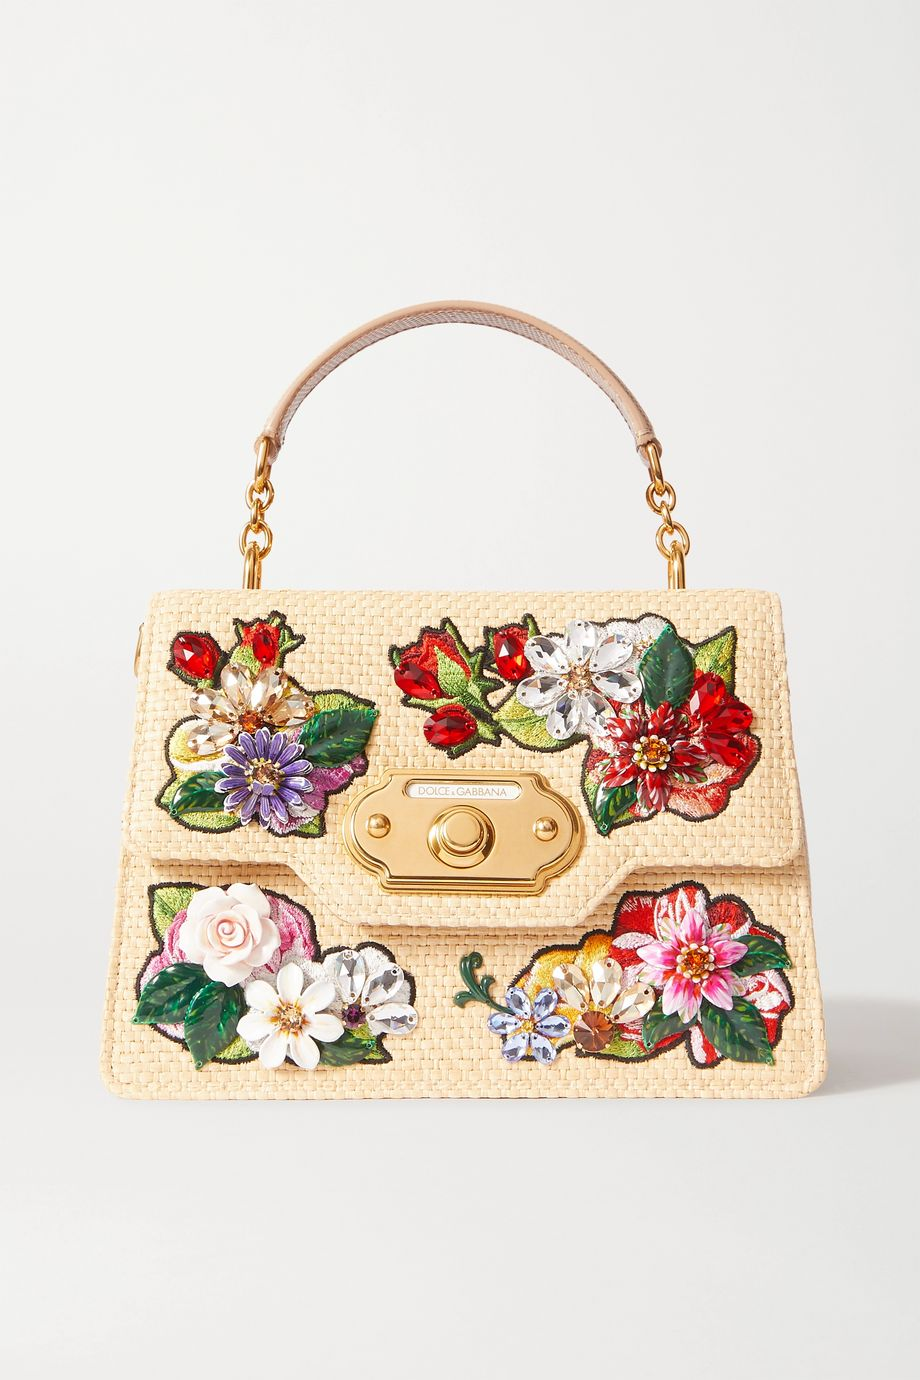 Dolce & Gabbana Welcome embellished embroidered raffia and leather tote